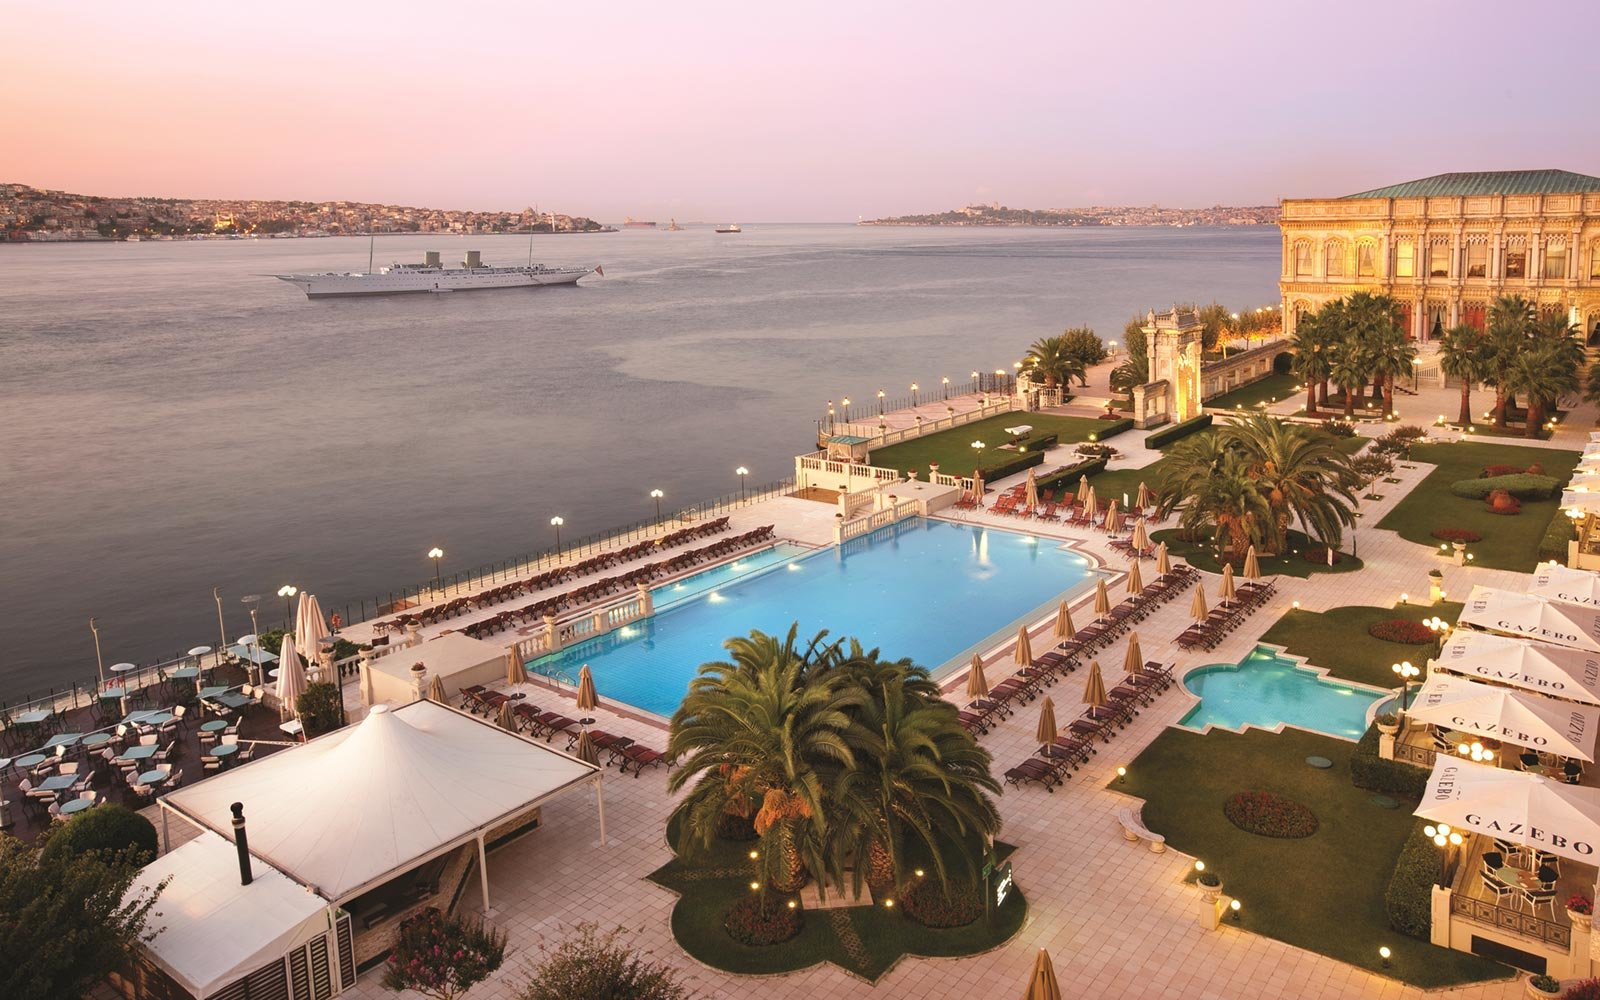 No. 14: Ciragan Palace Kempinski in Istanbul, Turkey